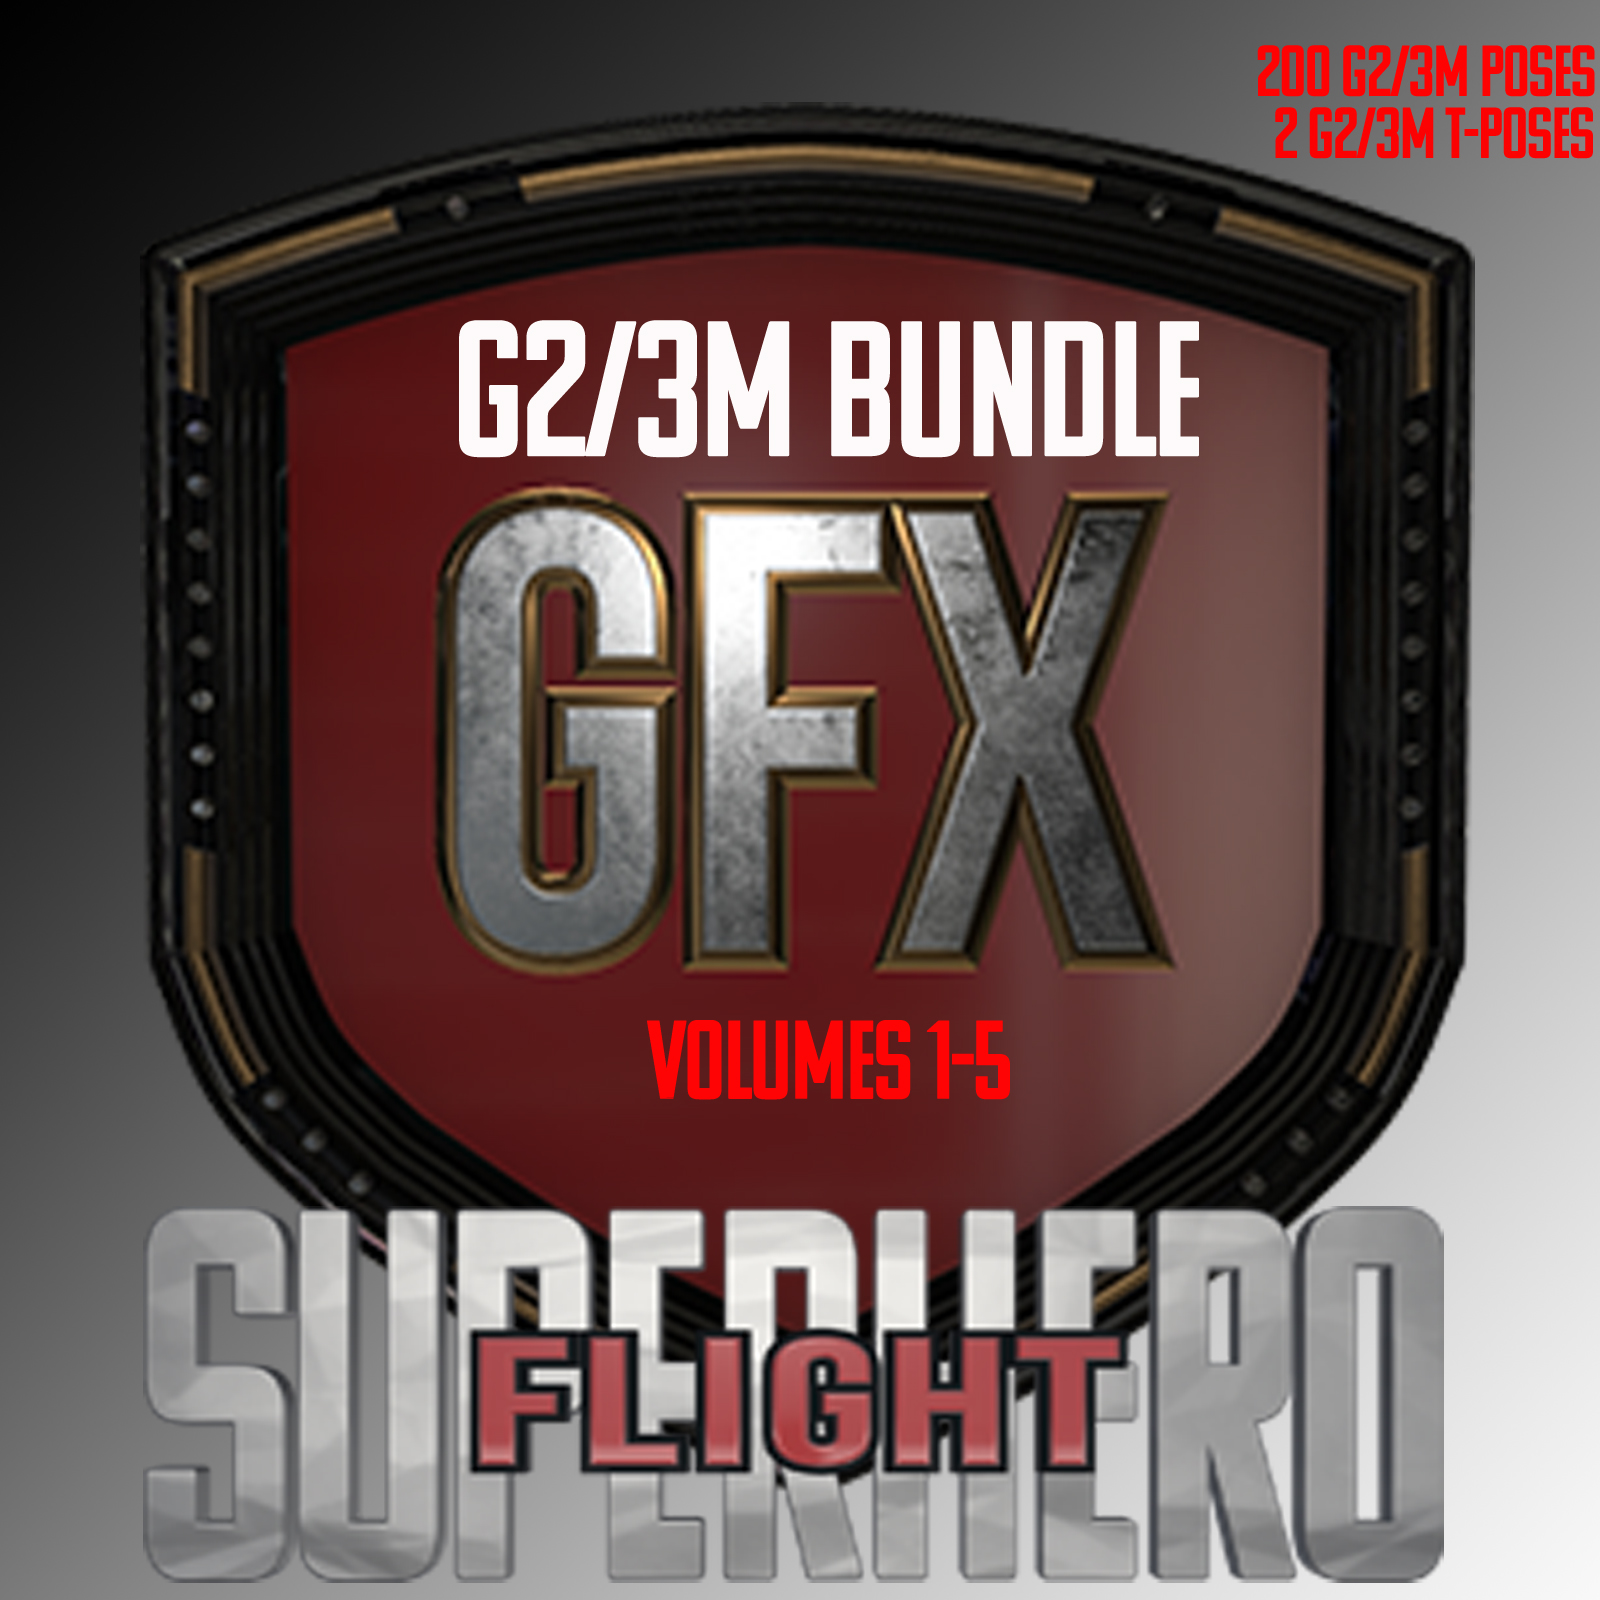 SuperHero Flight Bundle for G2M and G3M